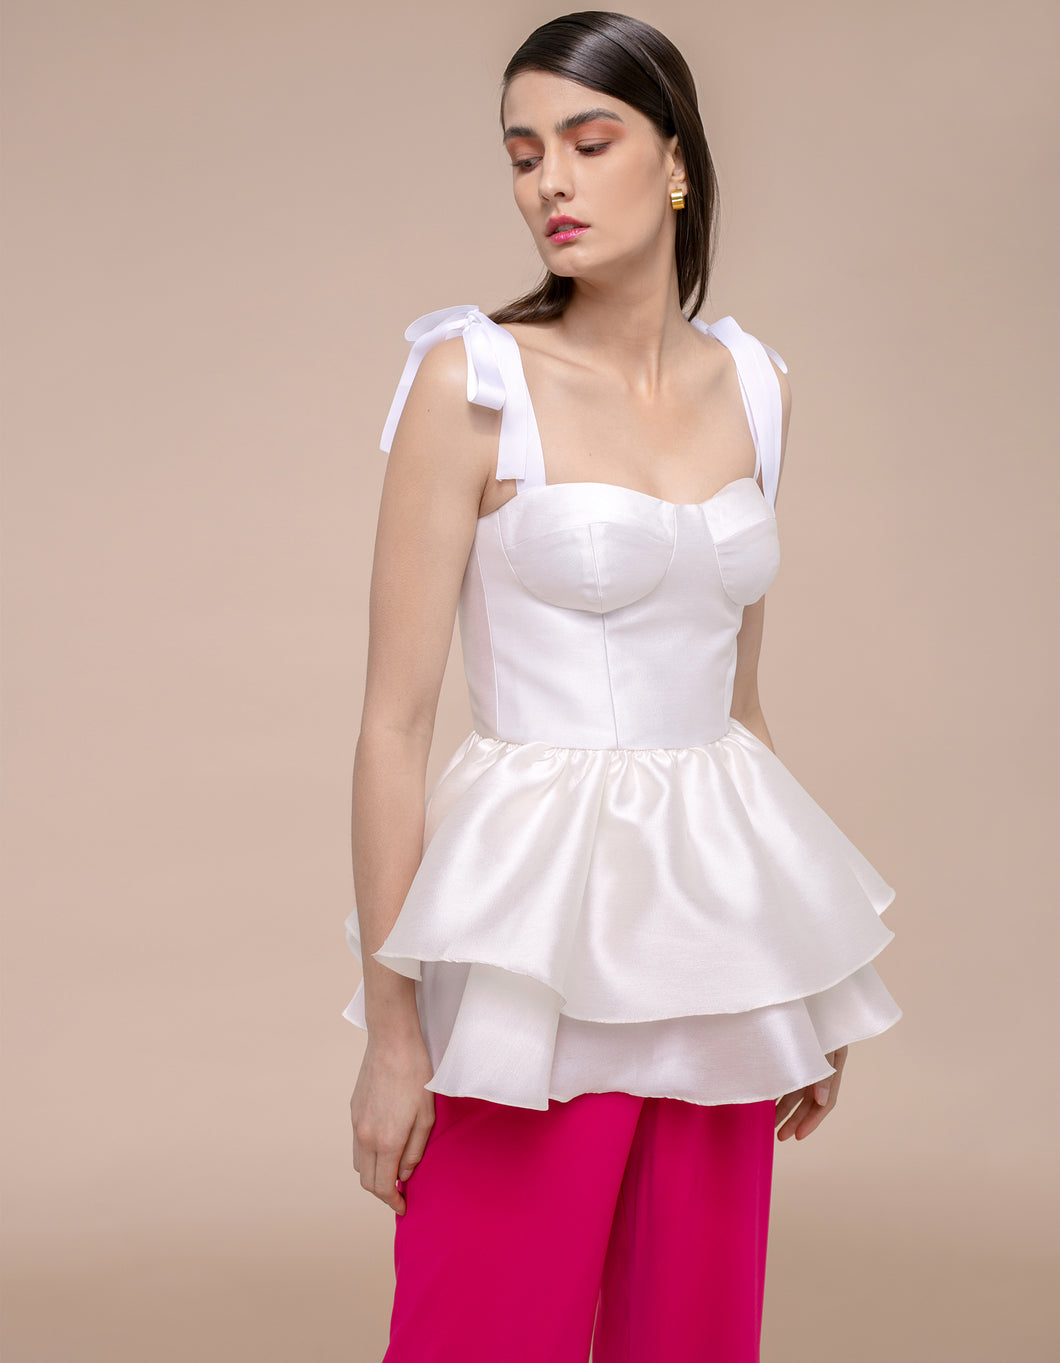 Briette Top